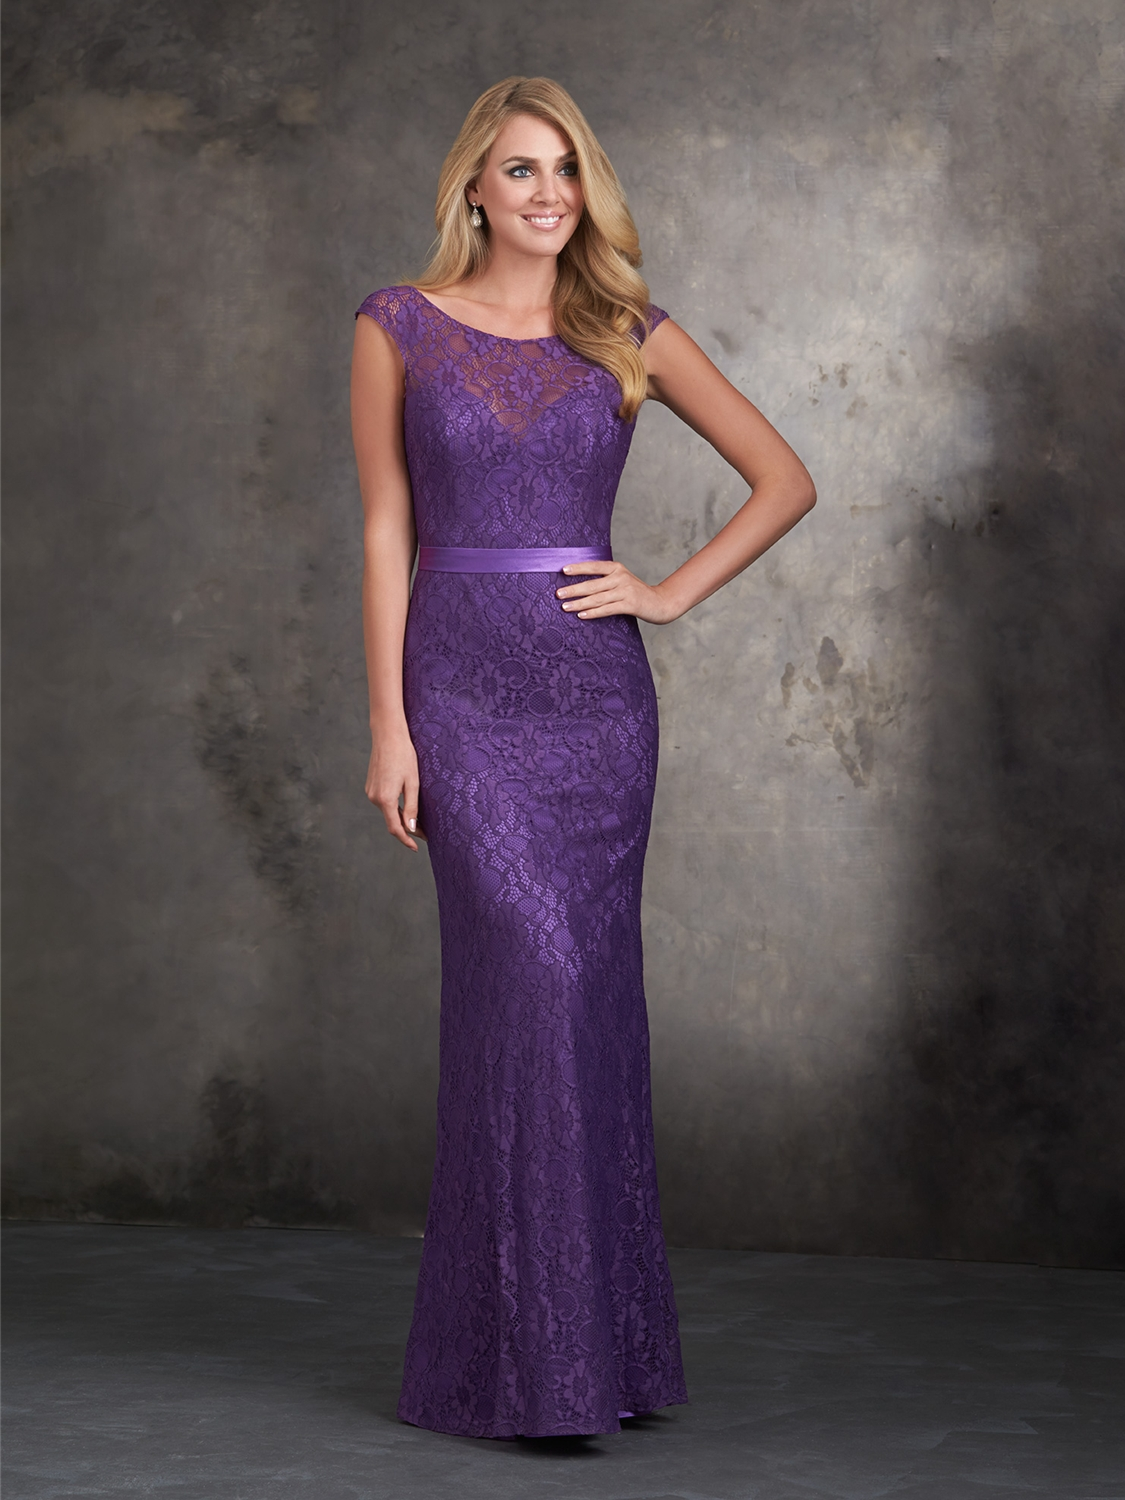 Allure bridesmaids bridesmaid dress style 1404 house of brides select color ombrellifo Images